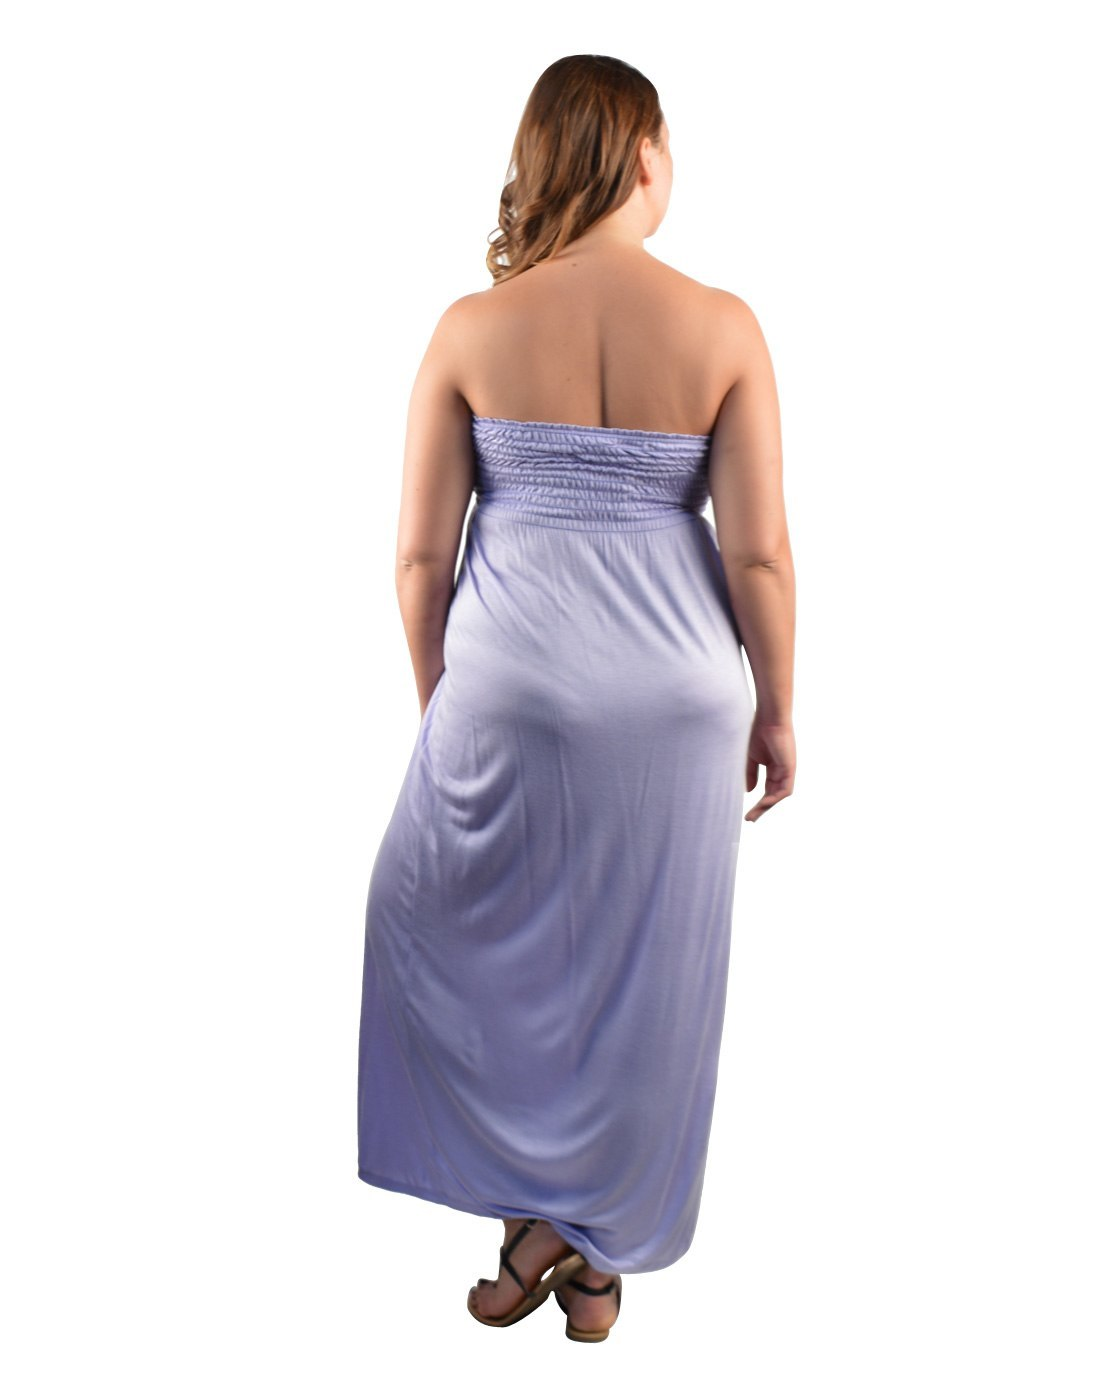 Women's Plus Size Clothing 2X 3X Strapless Full Length ...